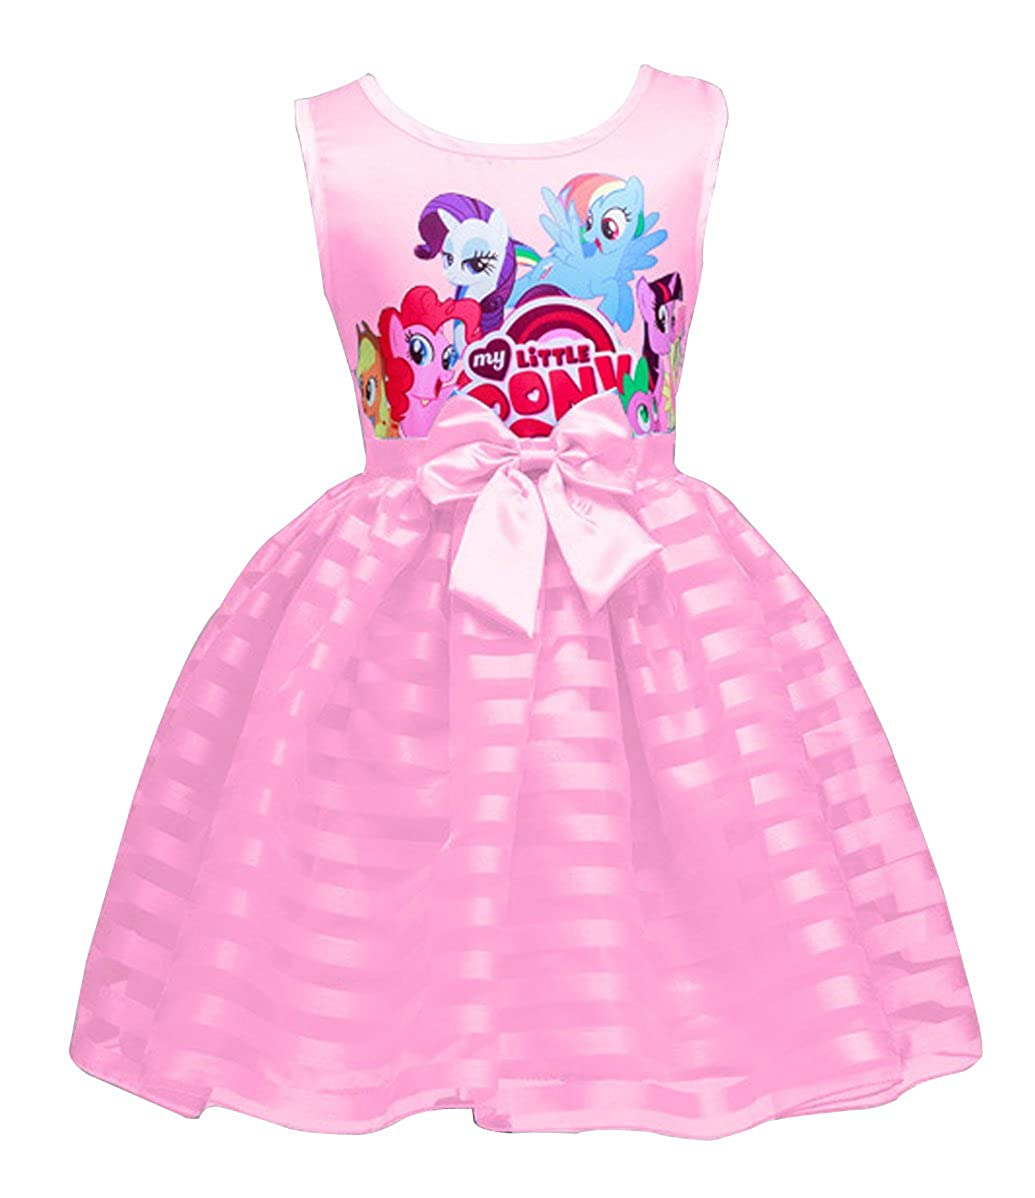 LEMONBABY Summer My Little Pony Sleeveless Princess Casual Lace Dress